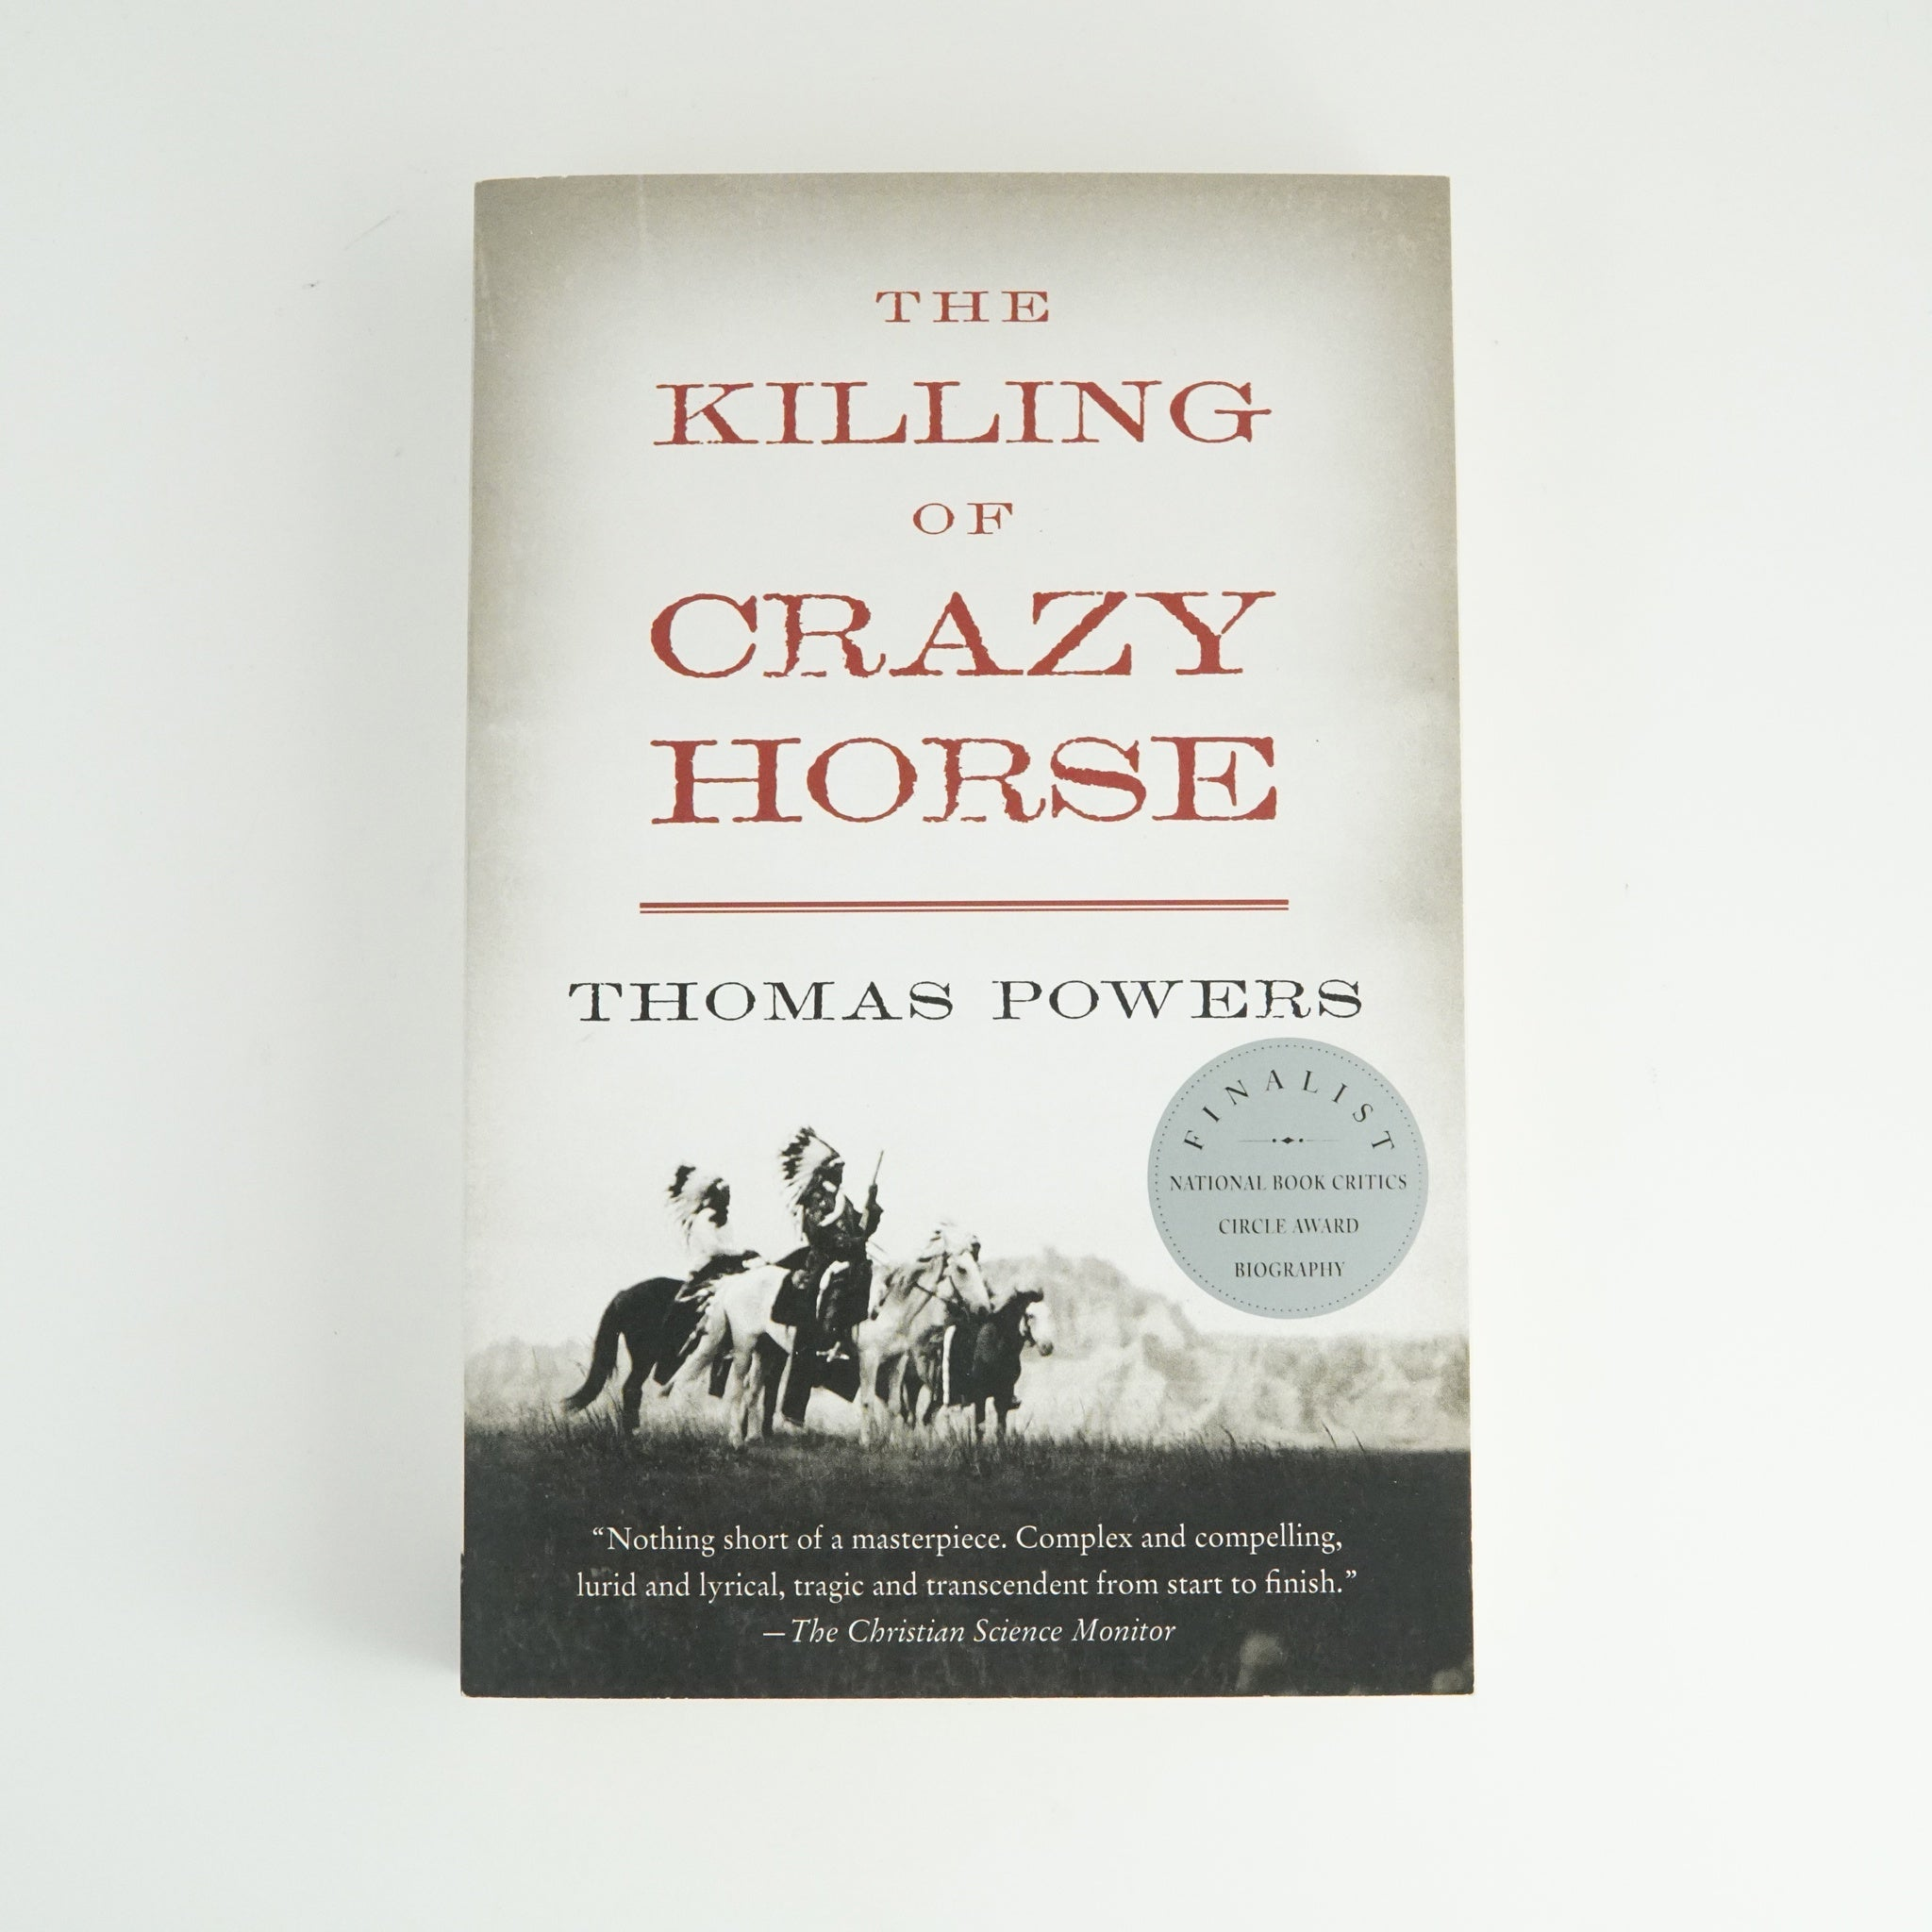 BK 12 THE KILLING OF CRAZY HORSE BY THOMAS POWERS